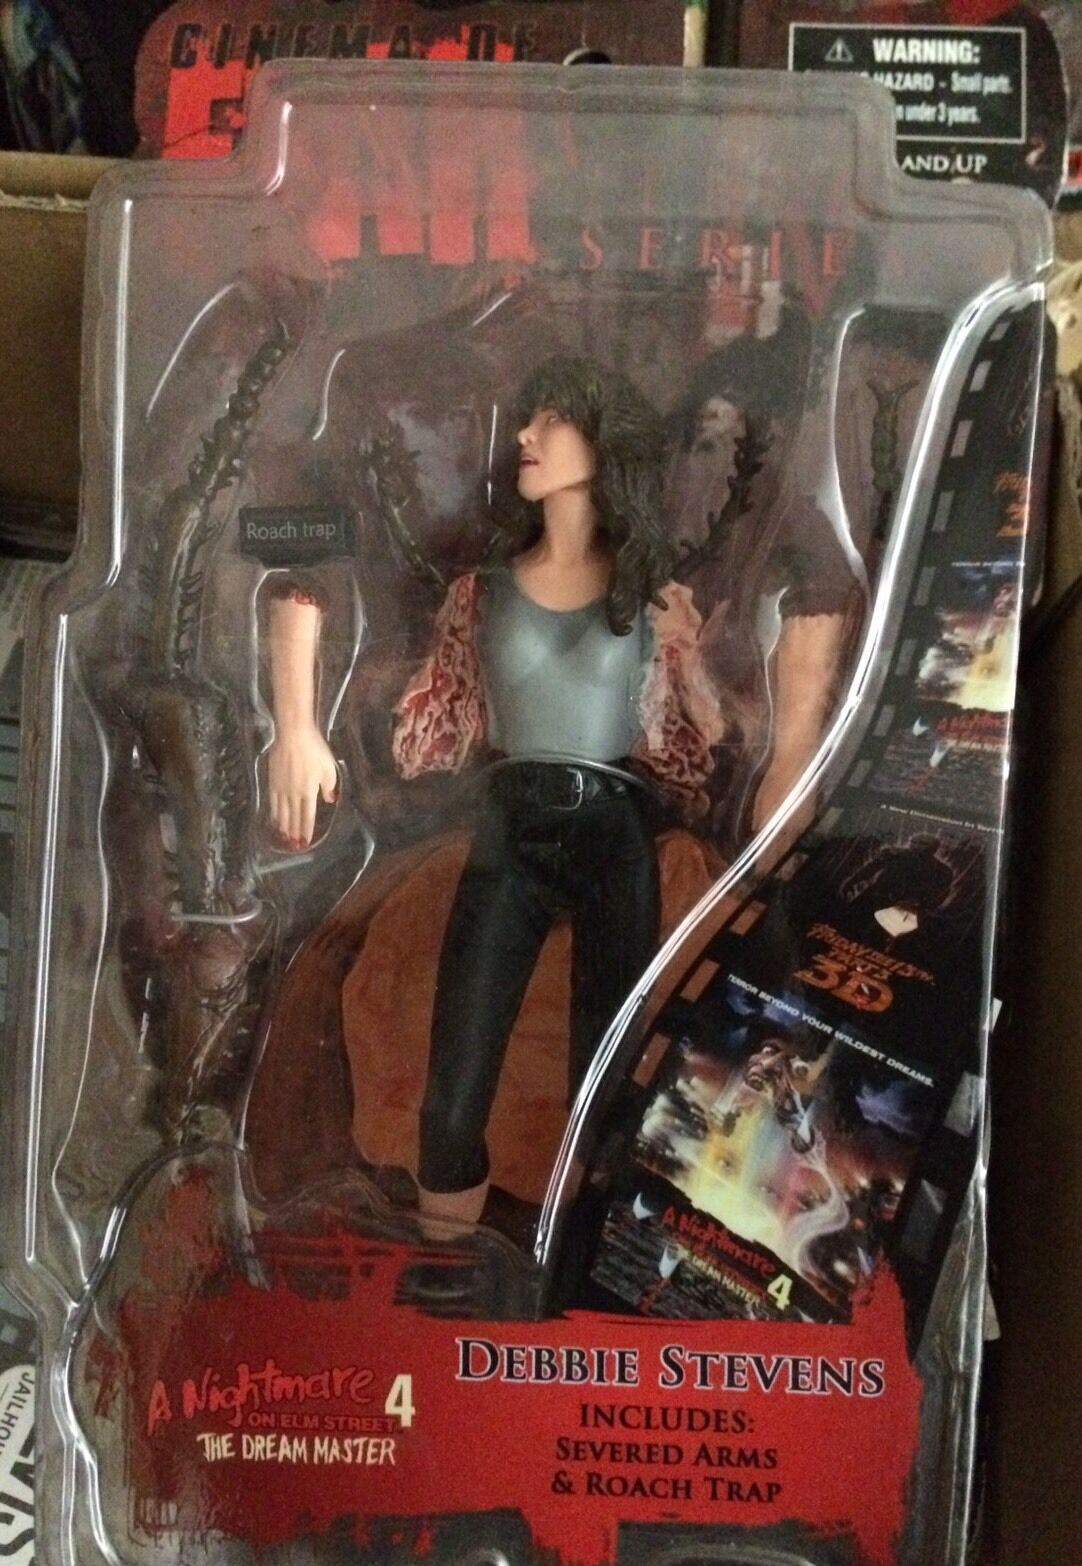 Mezco Cinema of Fear Ser 4 Nightmare on on on Elm Street Debbie Stevens Action Figure 80156c